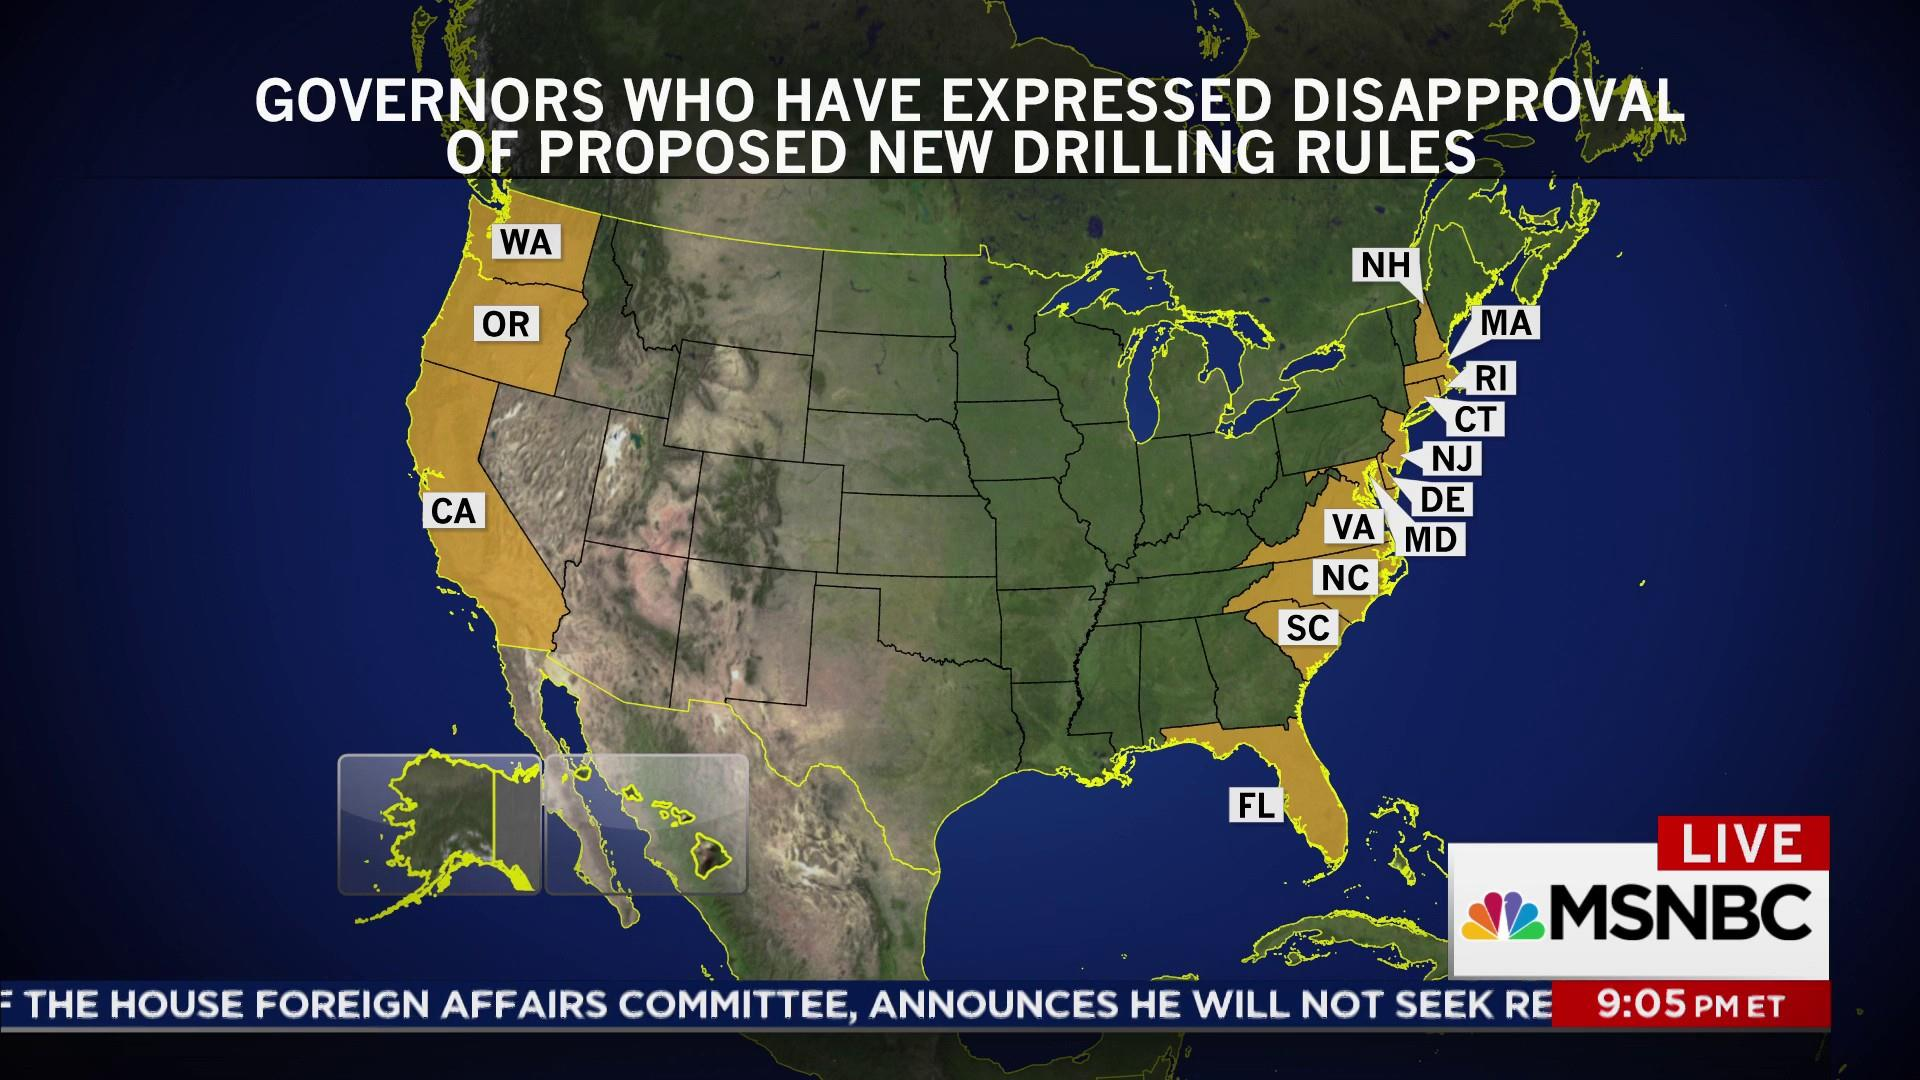 Zinke grants drilling exception to Florida